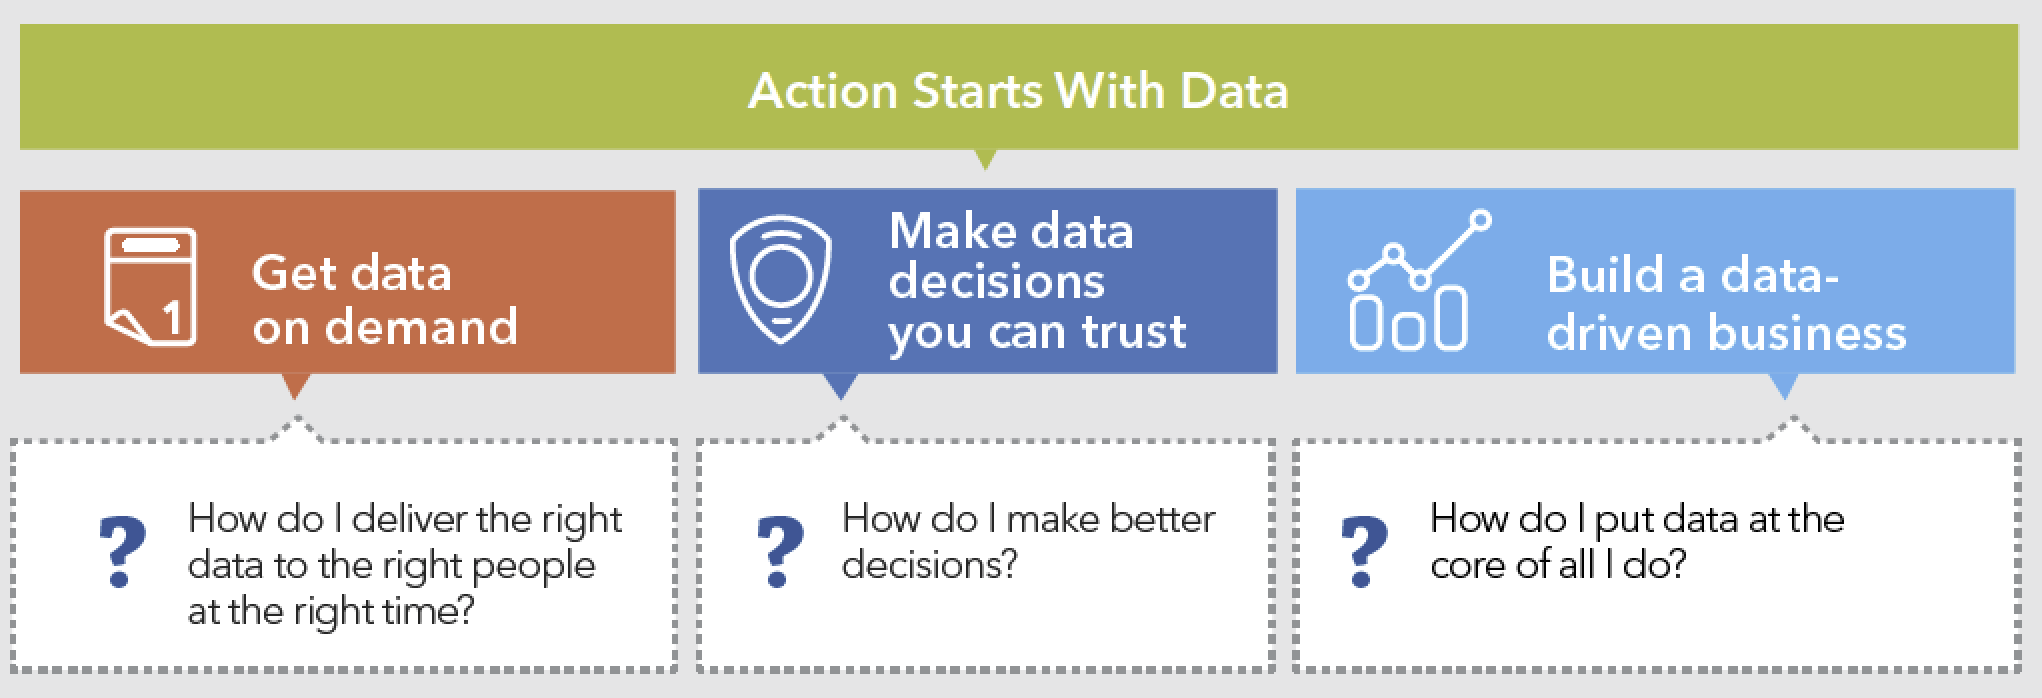 Understanding Action Starts With Data